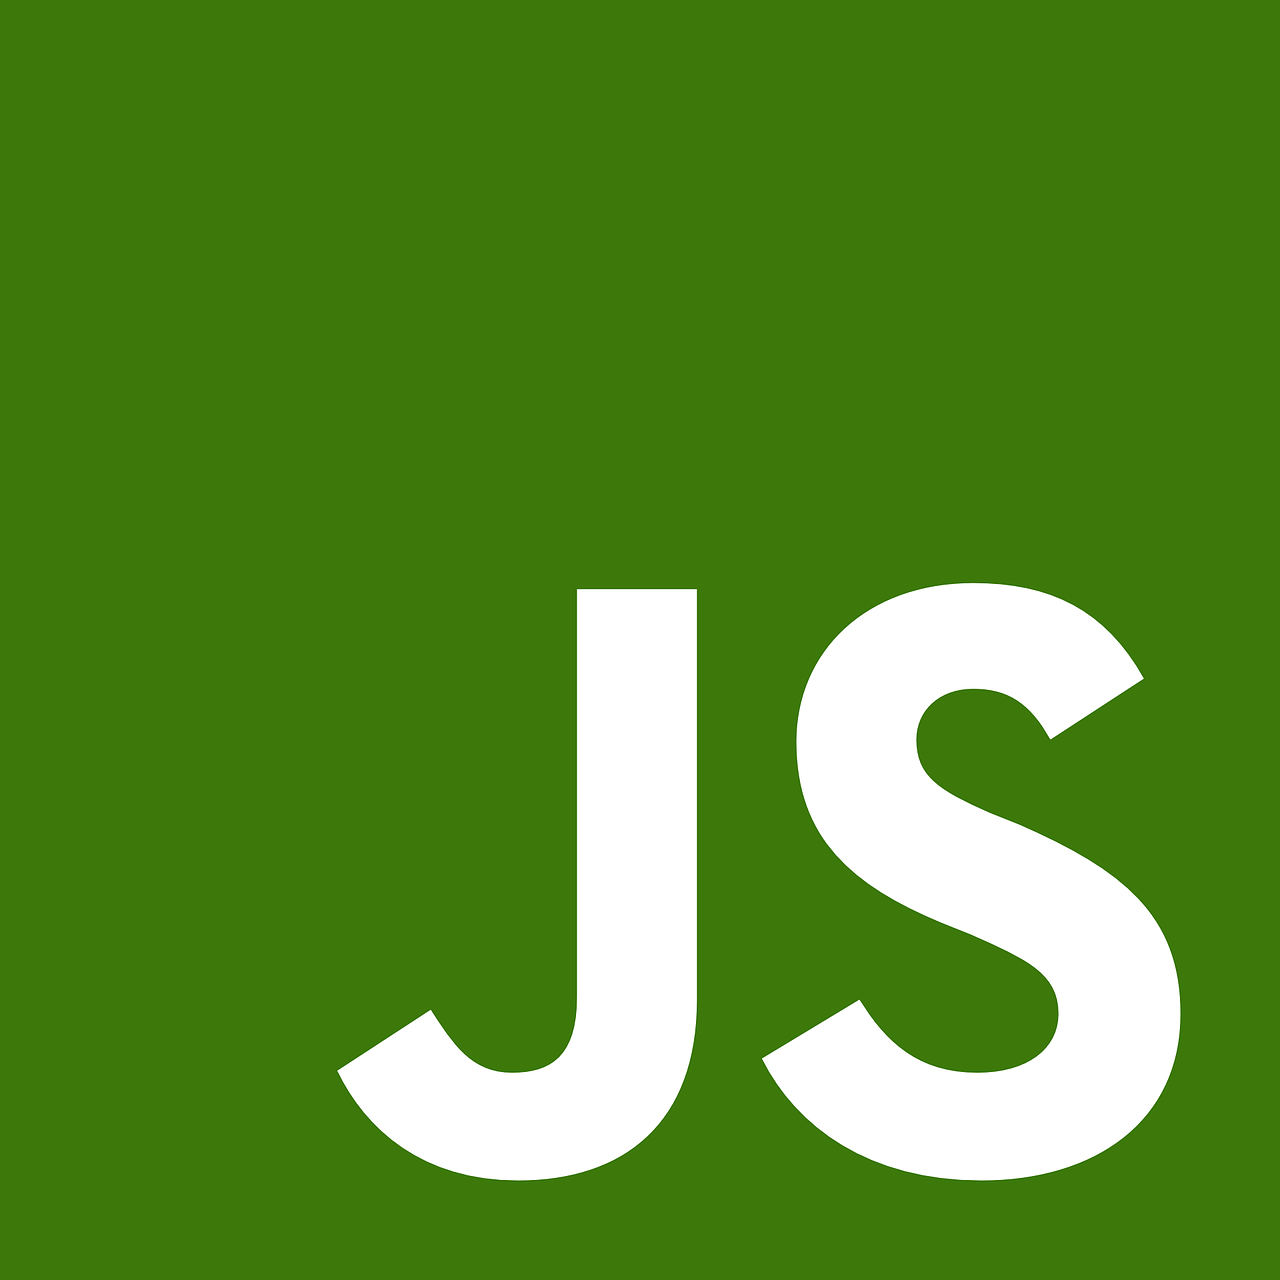 JavaScript: Explained In Simple Words